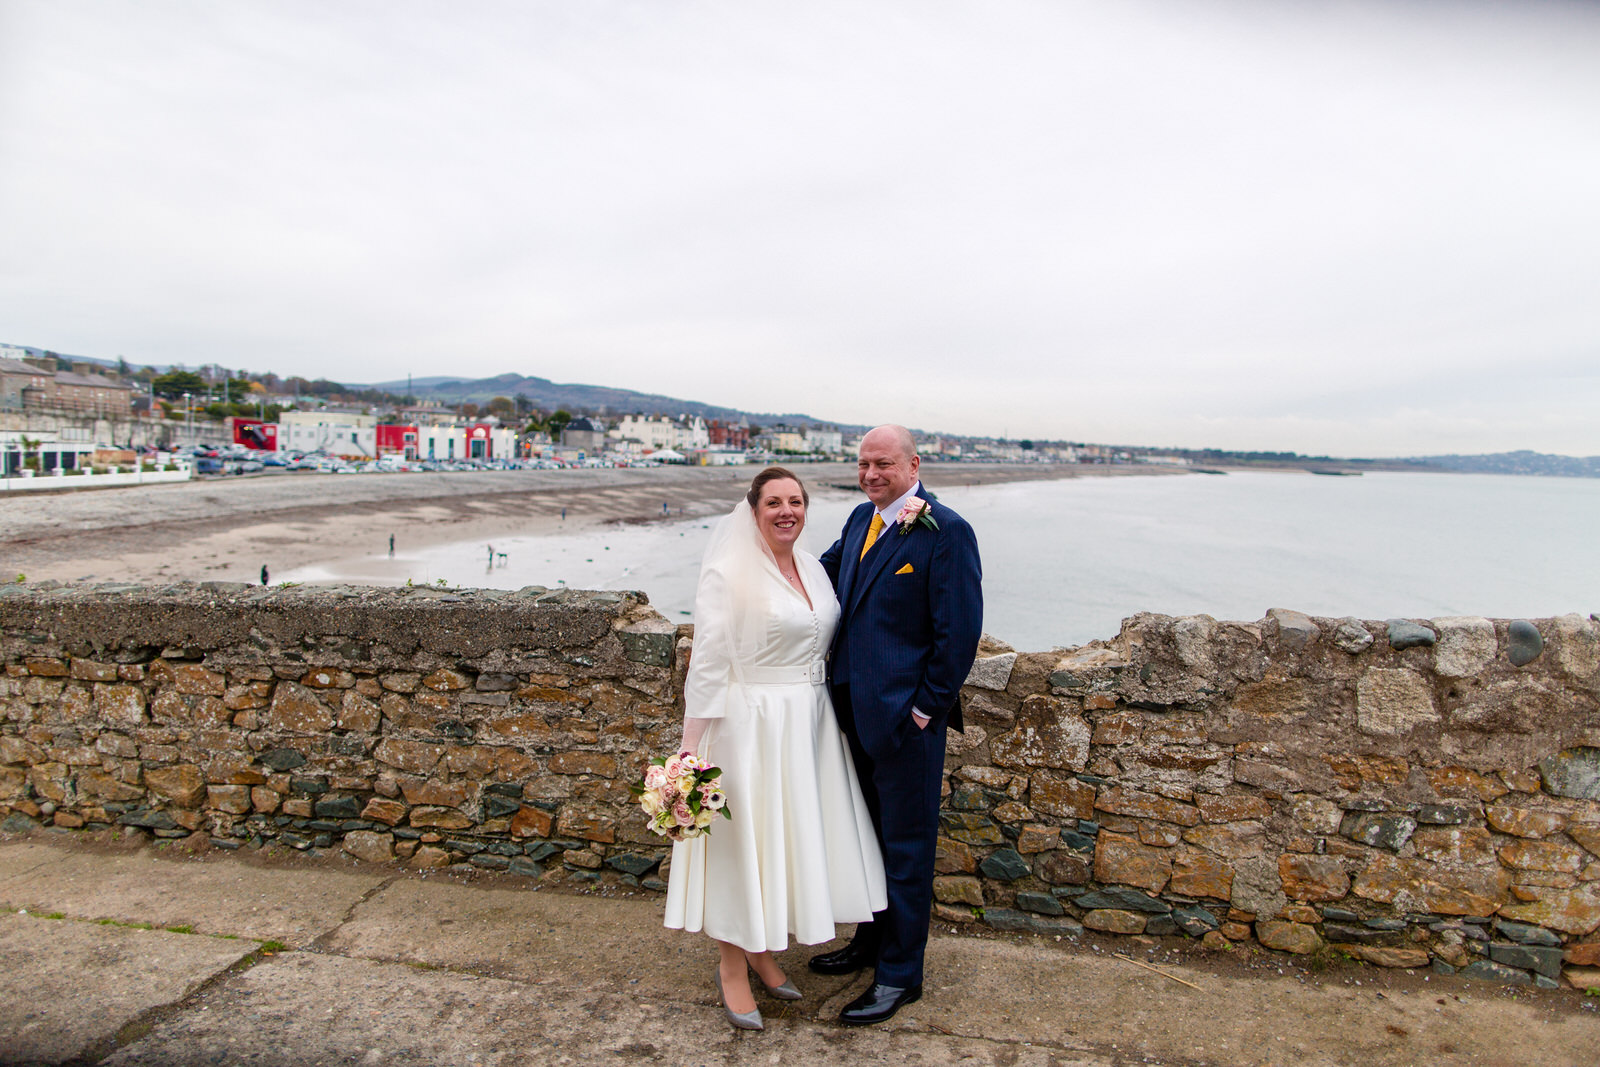 Roger-kenny-wedding-photographer-wicklow-glenview_058.jpg